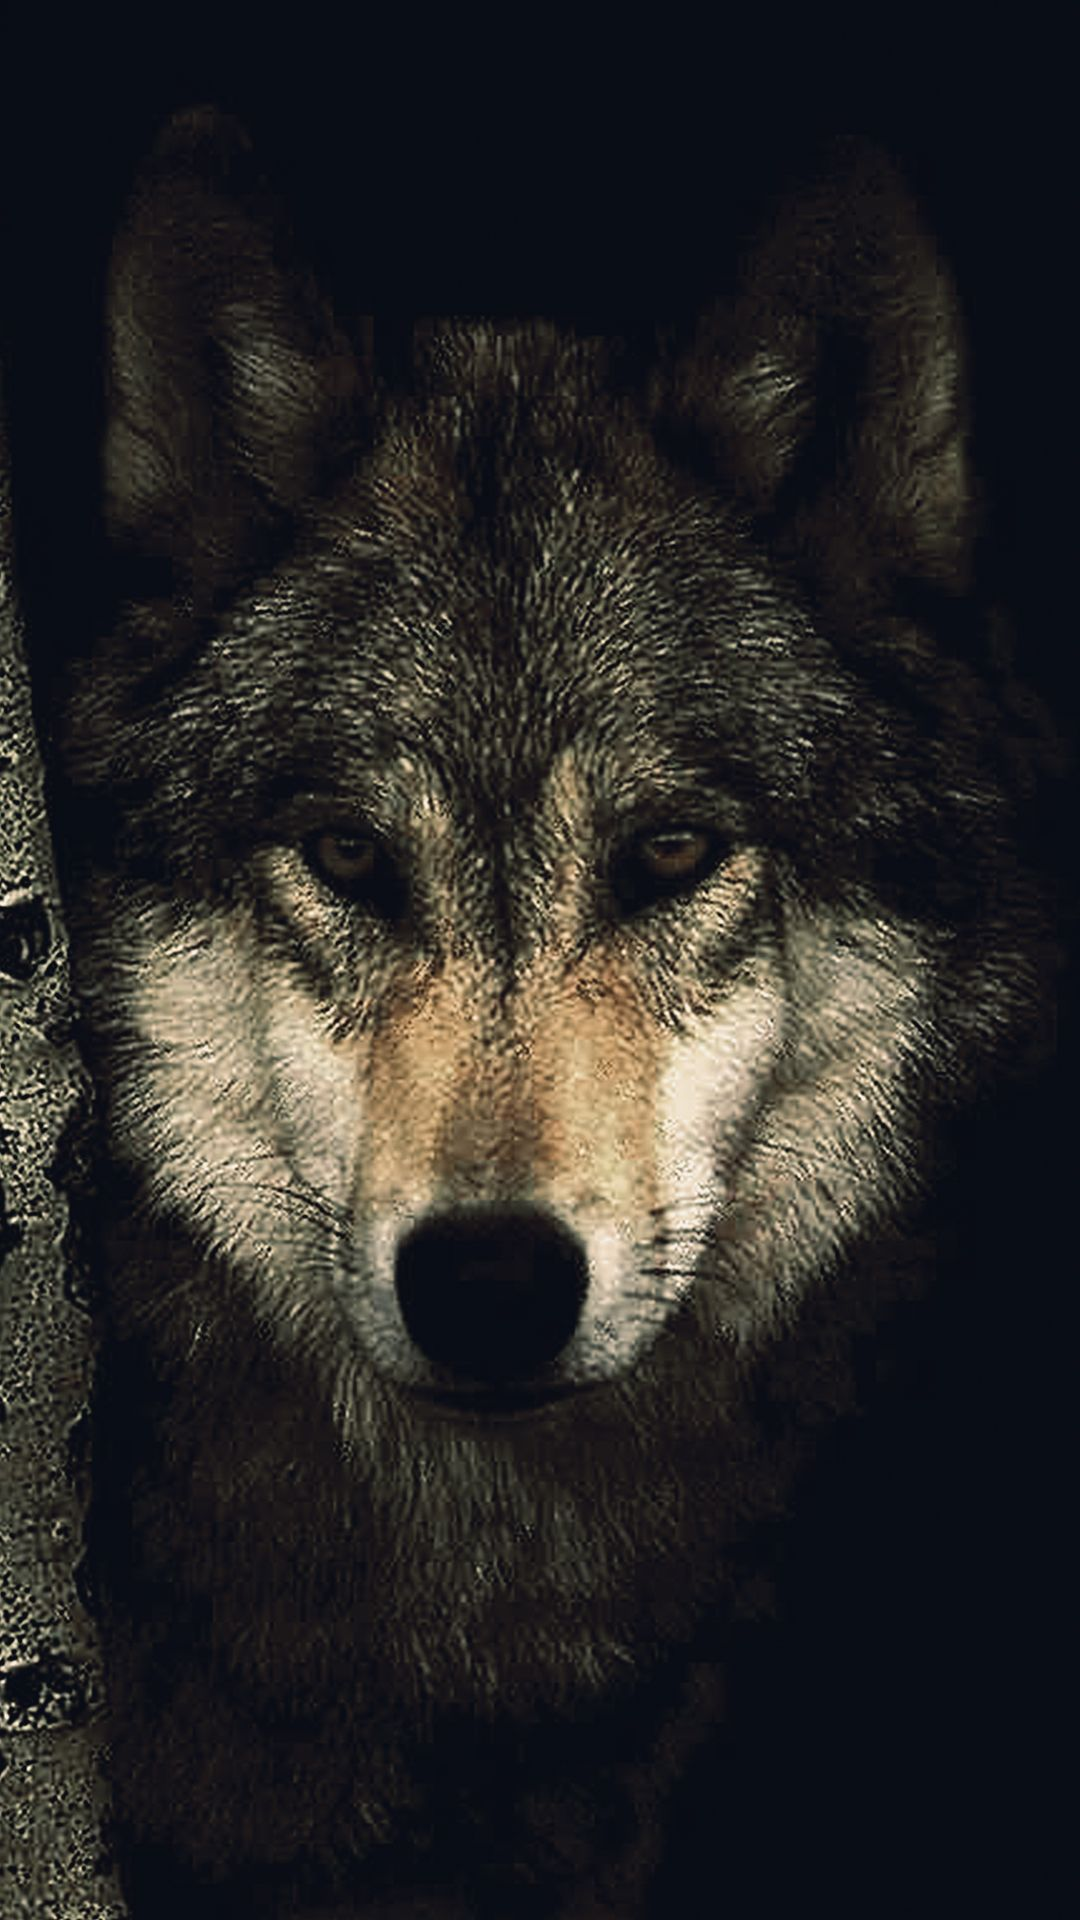 Wolf [1080x1920] Need iPhone 6S Plus Wallpaper/